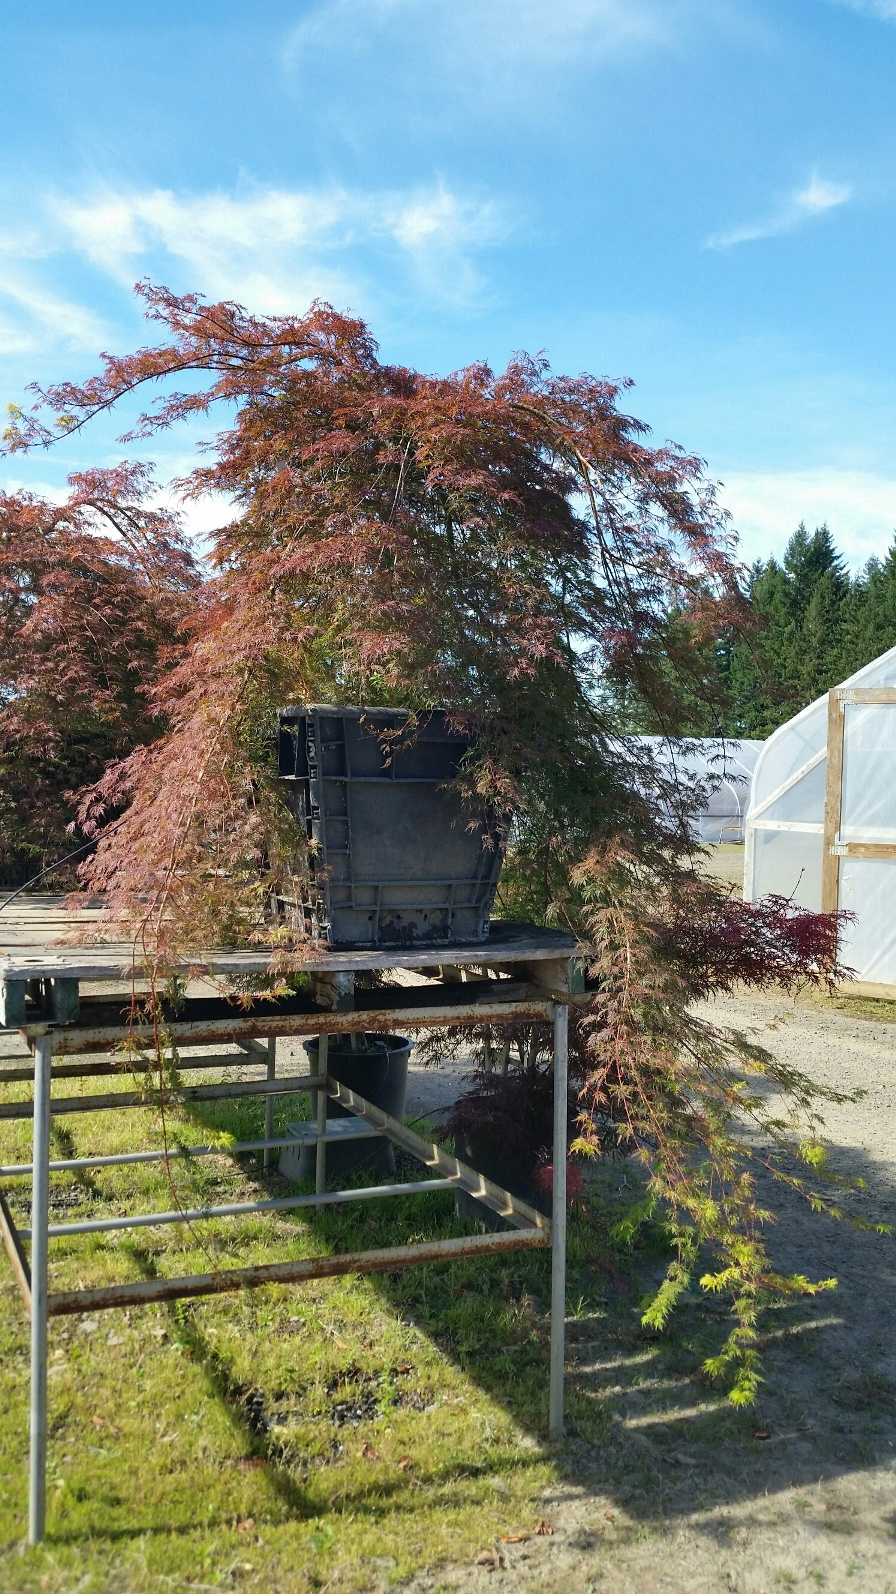 Acer p.d. 'Emerald Lace' being trained on our display racks. Approx 9' from top of tree to end of branches